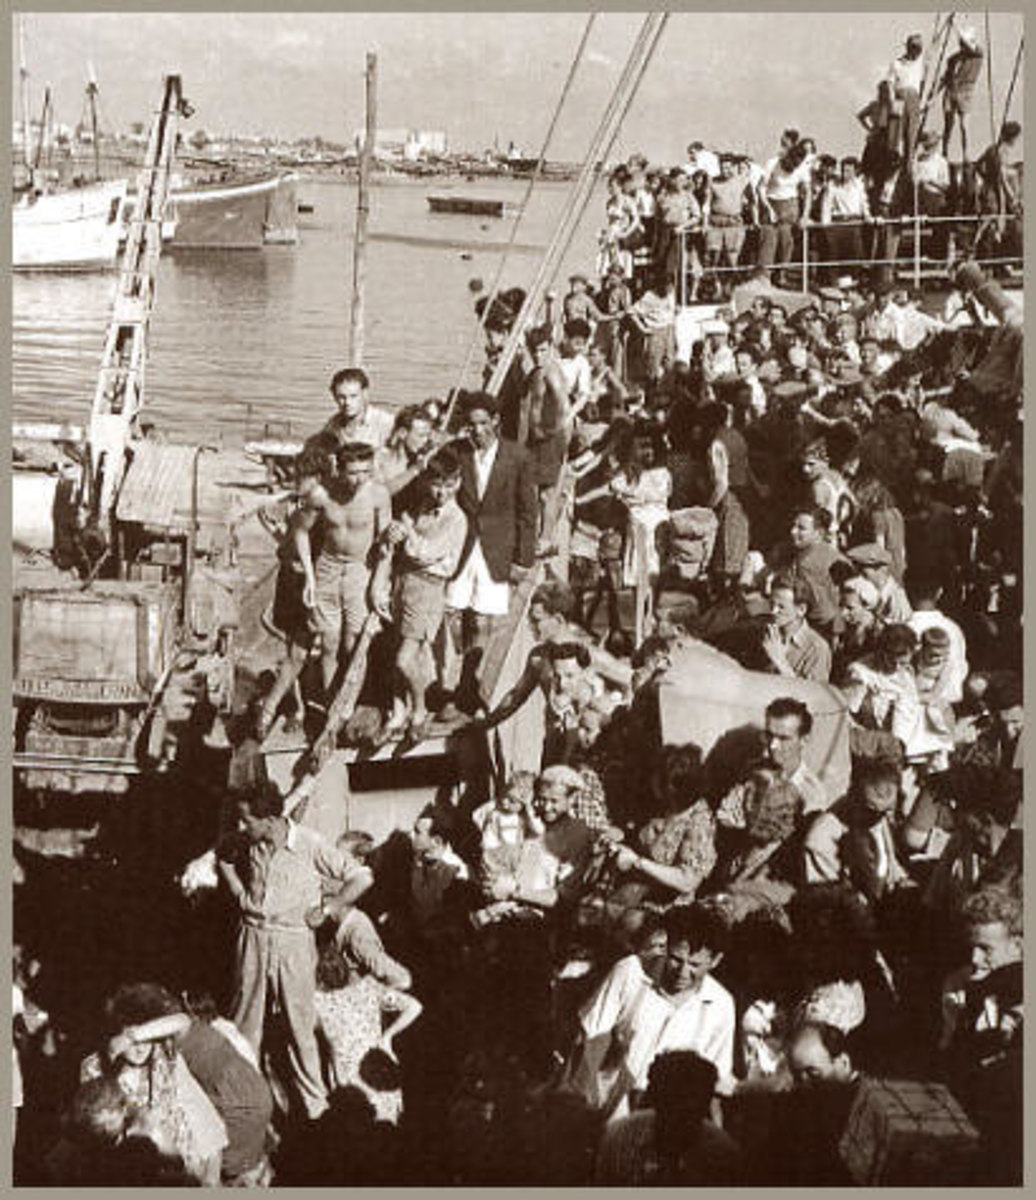 Holocaust Survivors Arrive in Haifa, Israel, 1948